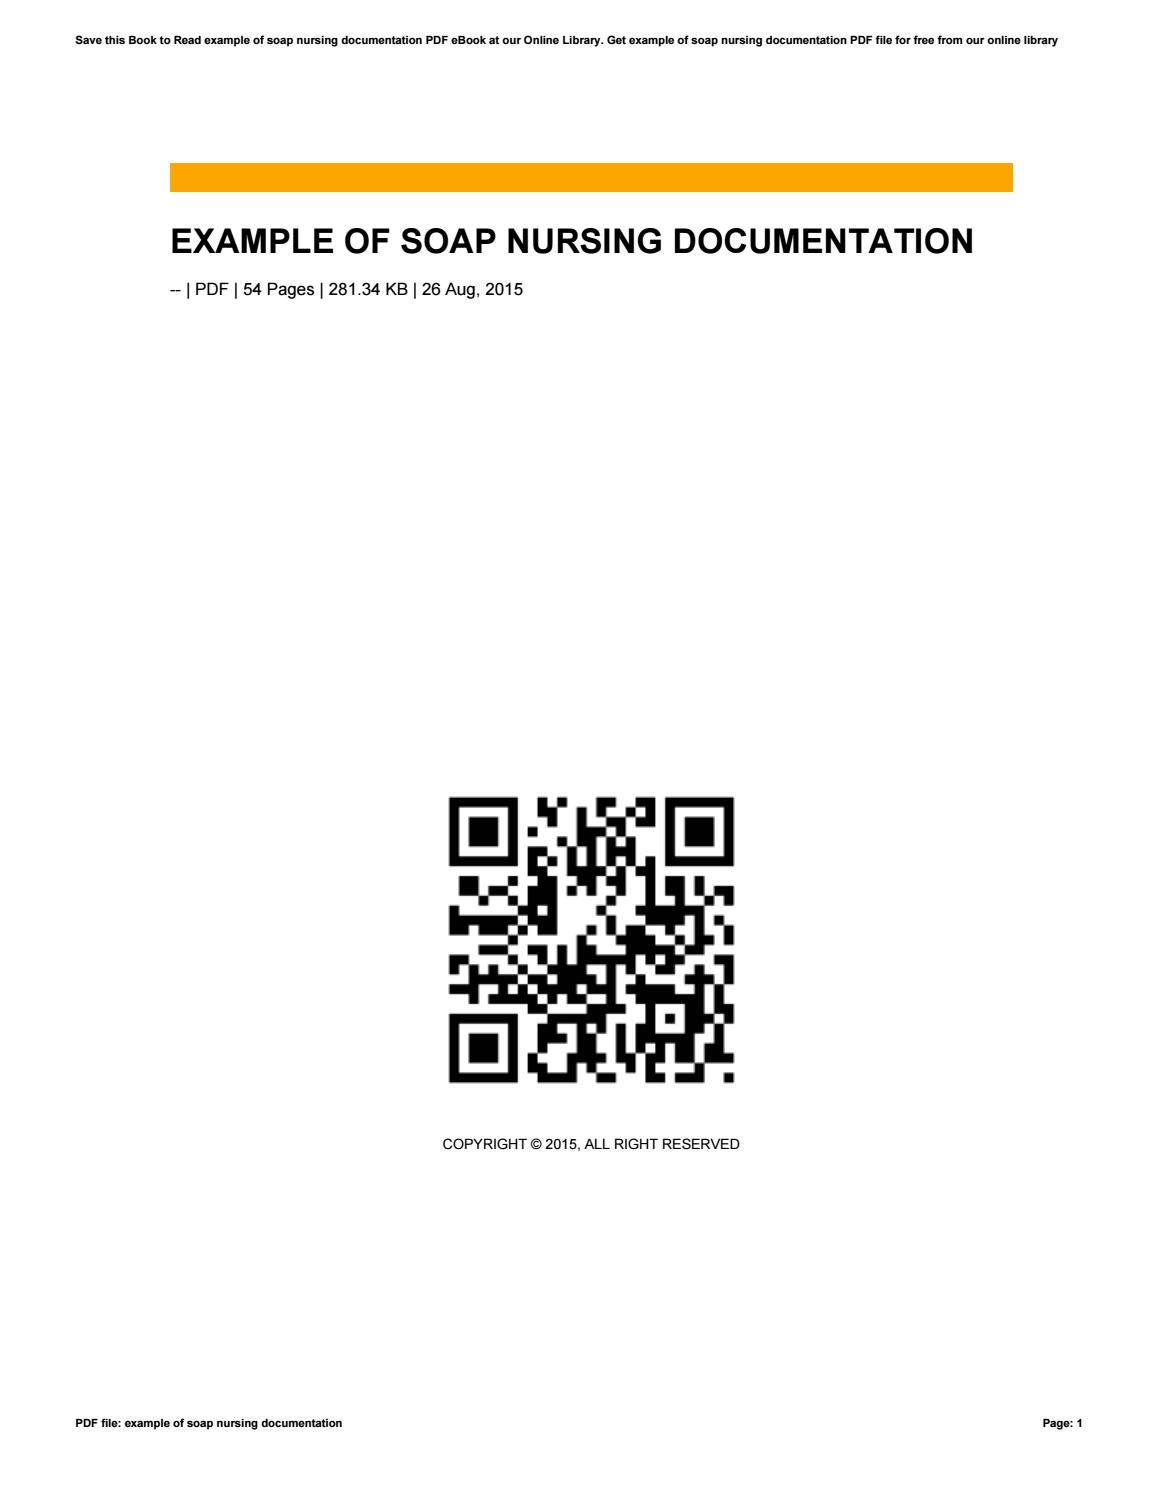 example of soap nursing documentation by reddit803 issuu